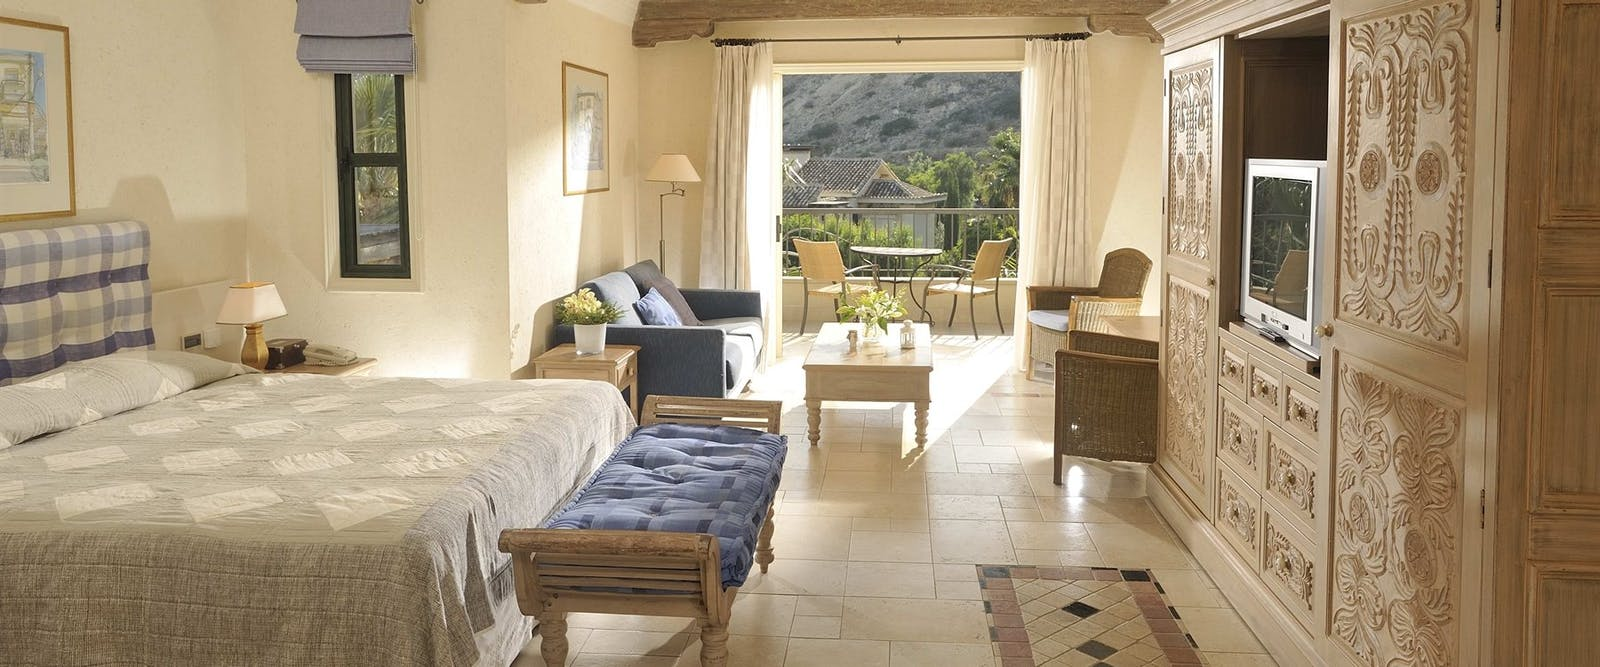 Executive Suite Garden View, Columbia Beach Resort, Pissouri Bay, Cyprus